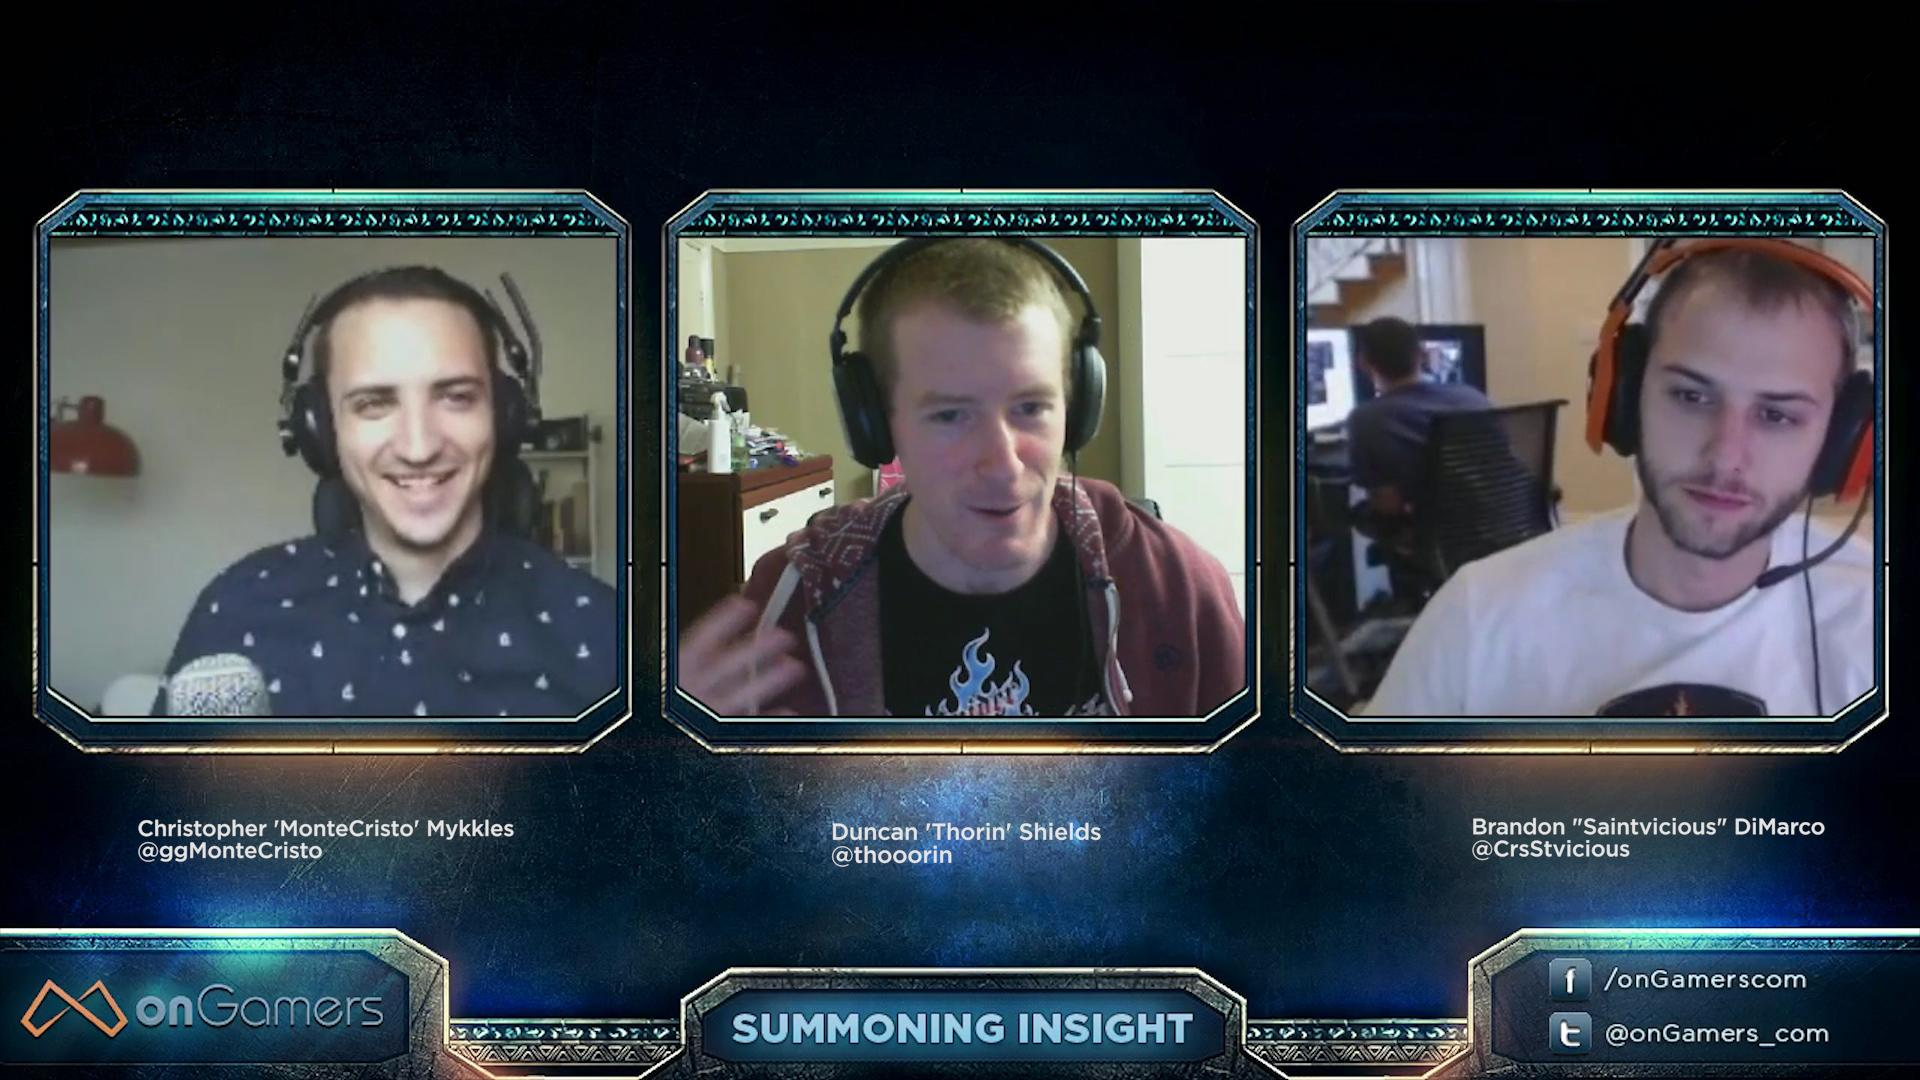 Summoning Insight Episode 19 VOD, with special guest Saintvicious